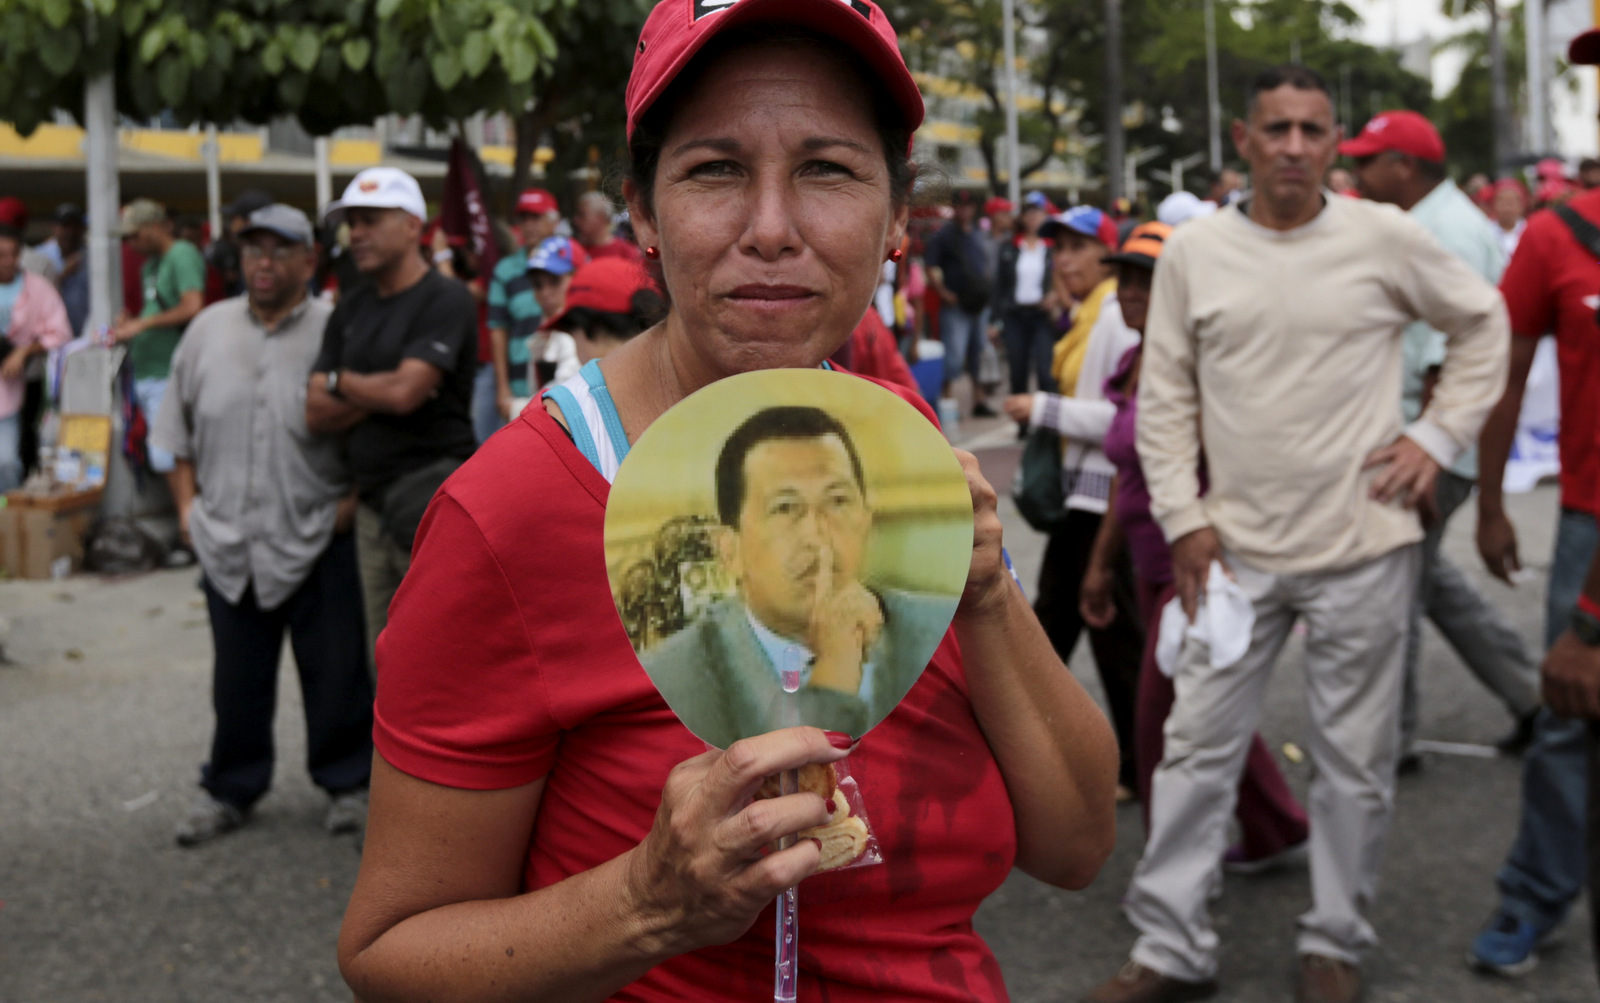 A government supporter holds an image of Venezuela's late president Hugo Chavez, during a march in Caracas, Venezuela, Wednesday, April 19, 2017. (AP/Fernando Llano)